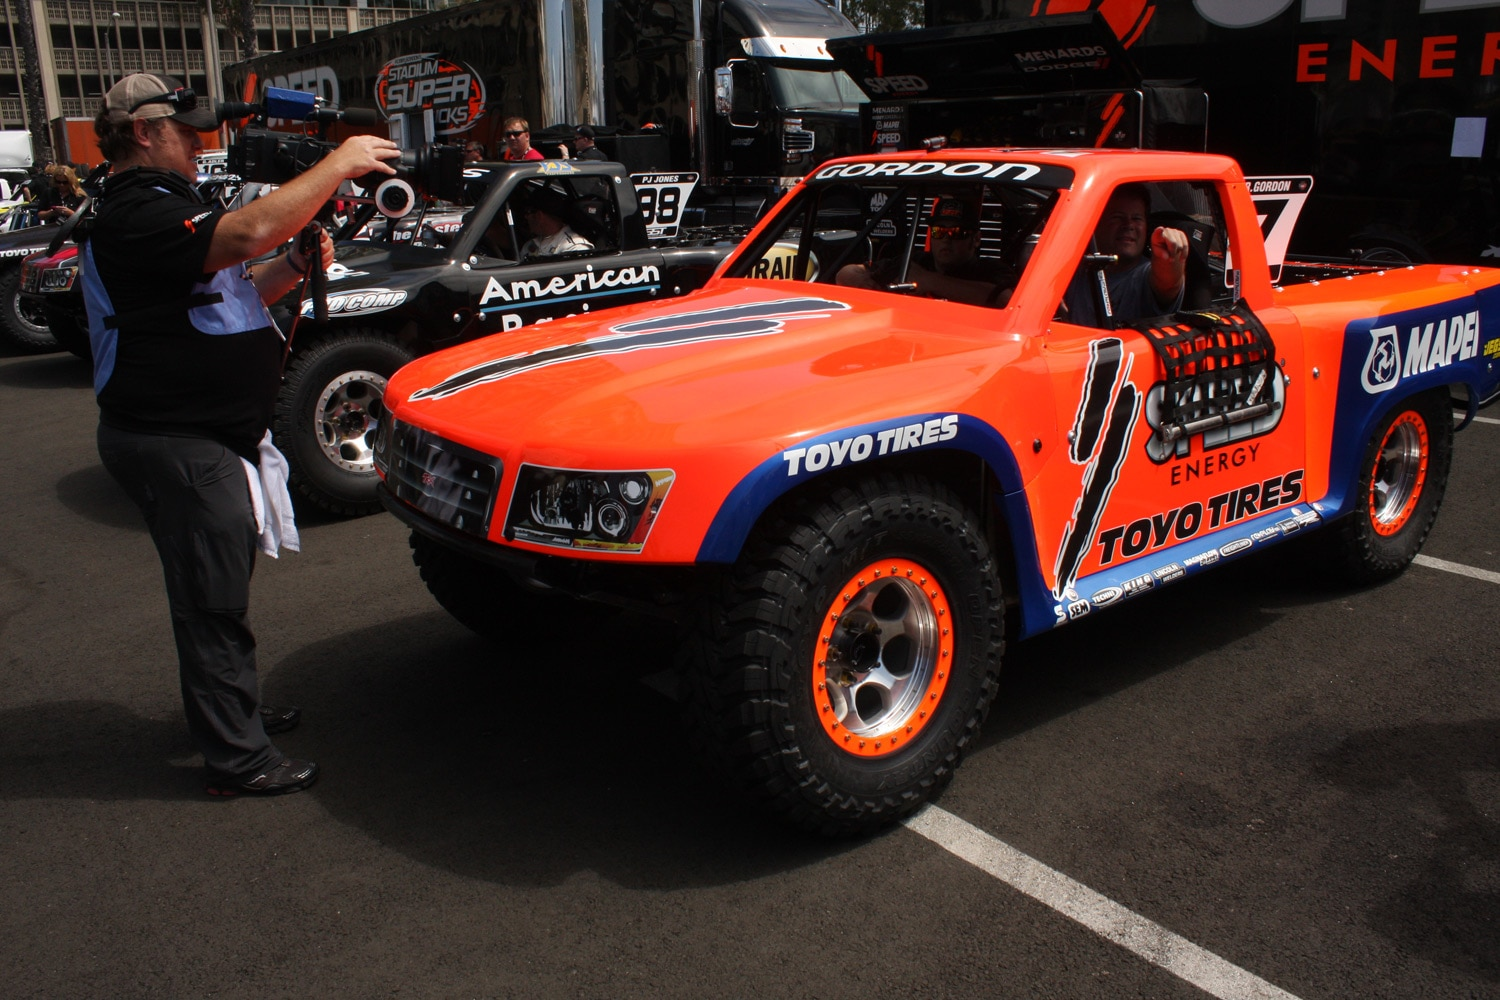 1304OR 22+Robby Gordon SST Stadium Super Trucks 2013 Long Beach Grand Prix